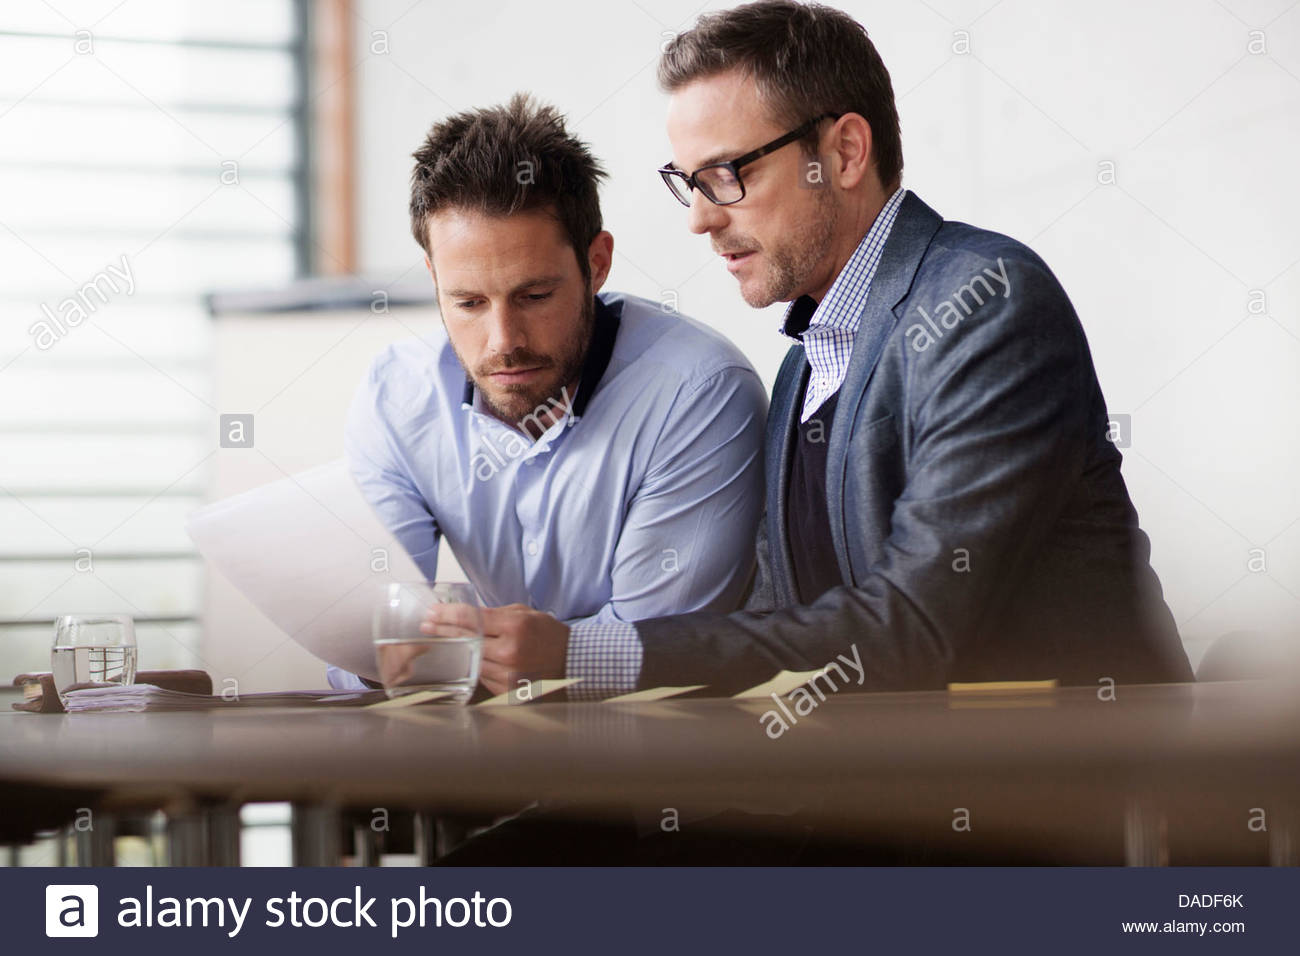 Two men in serious discussion - Stock Image